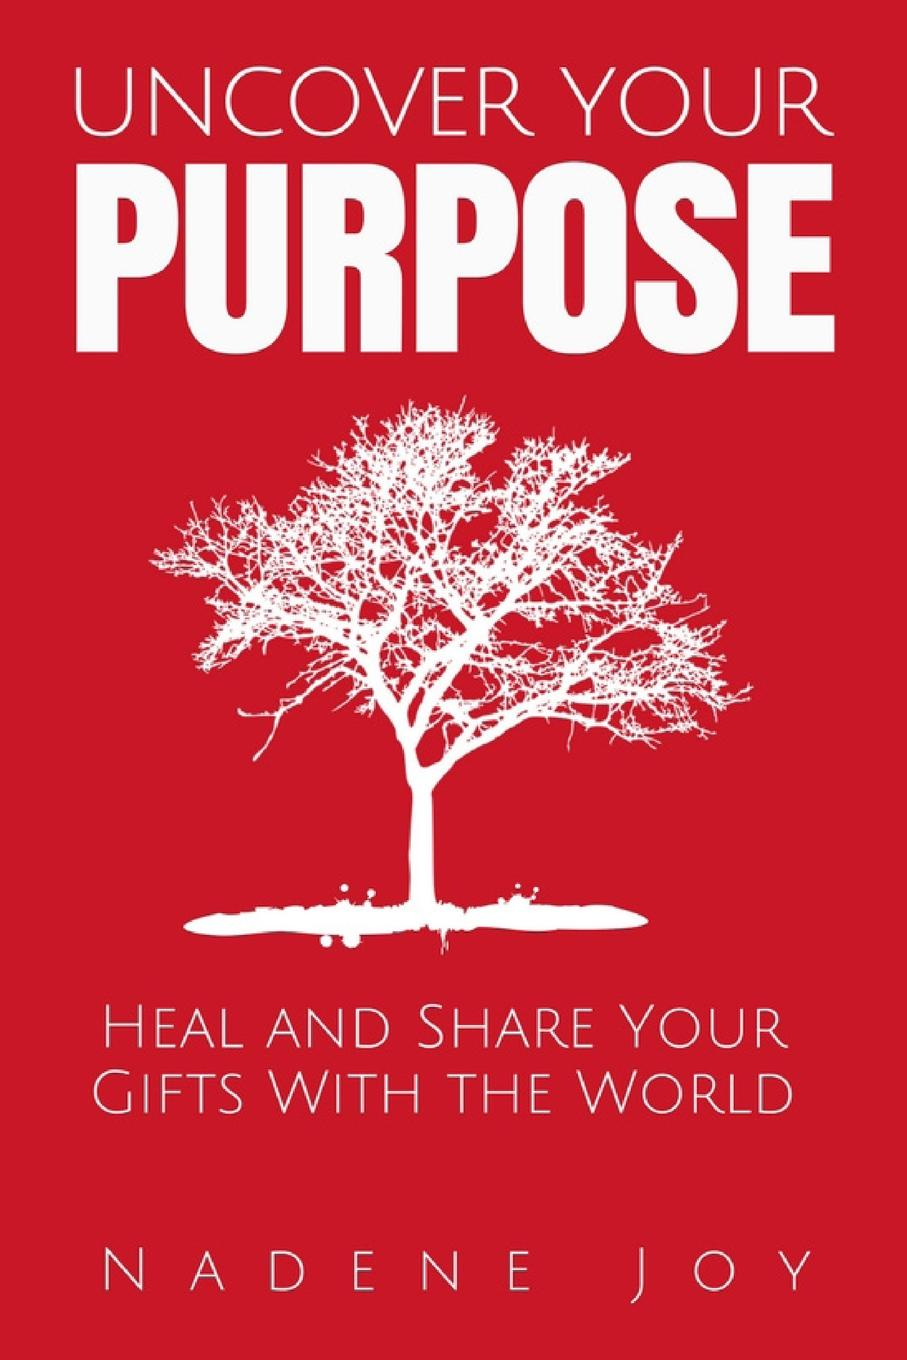 Nadene Joy Uncover Your Purpose. Heal and Share Your Gifts With the World leadership institute women with purpose finding life balance direction